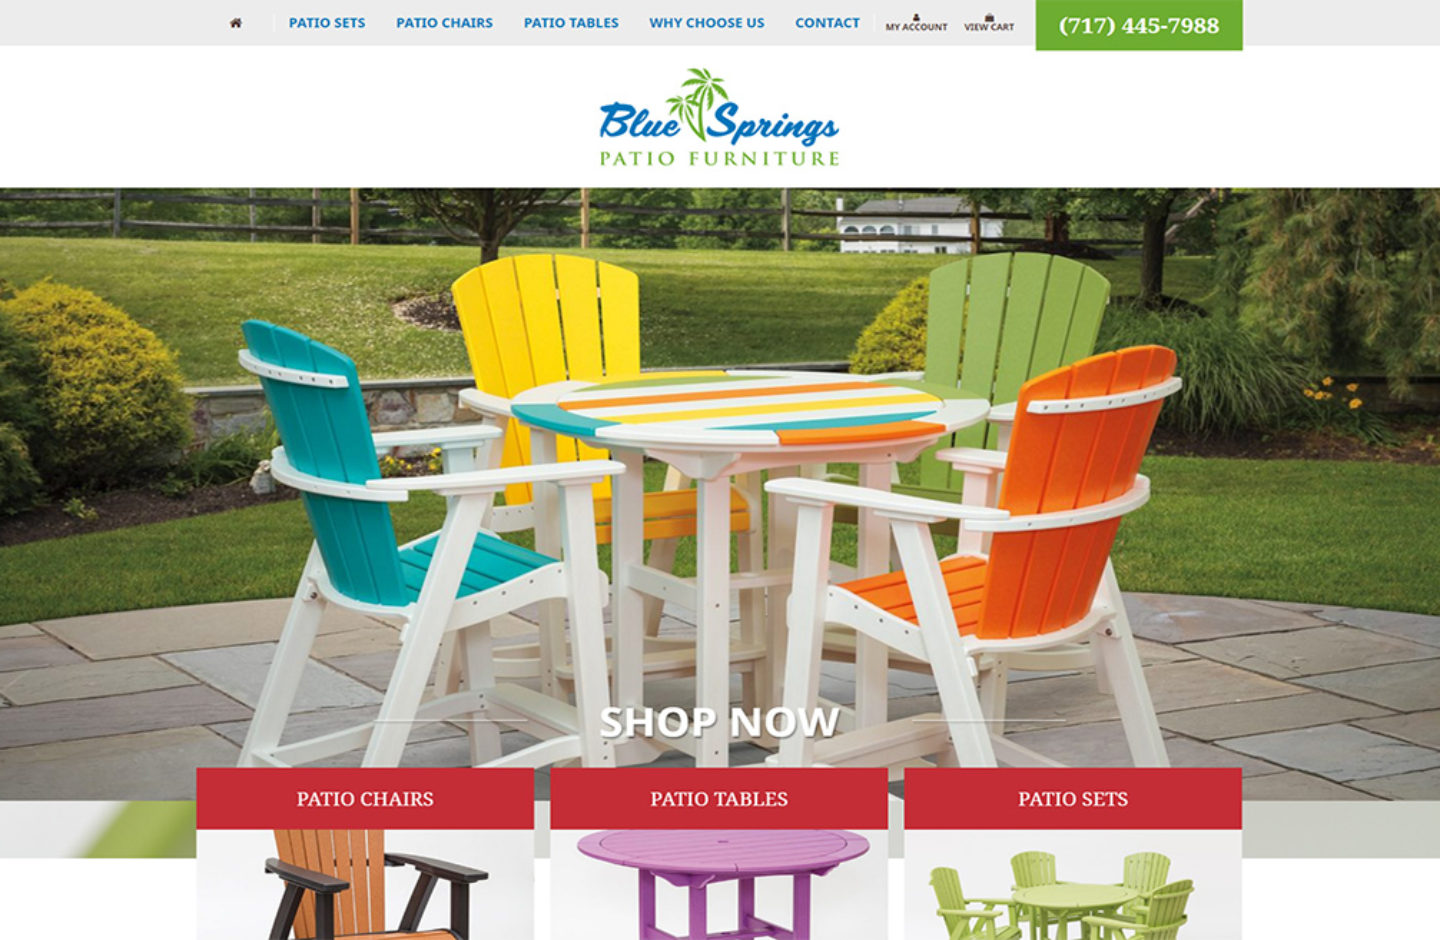 Blue Springs Patio Furniture